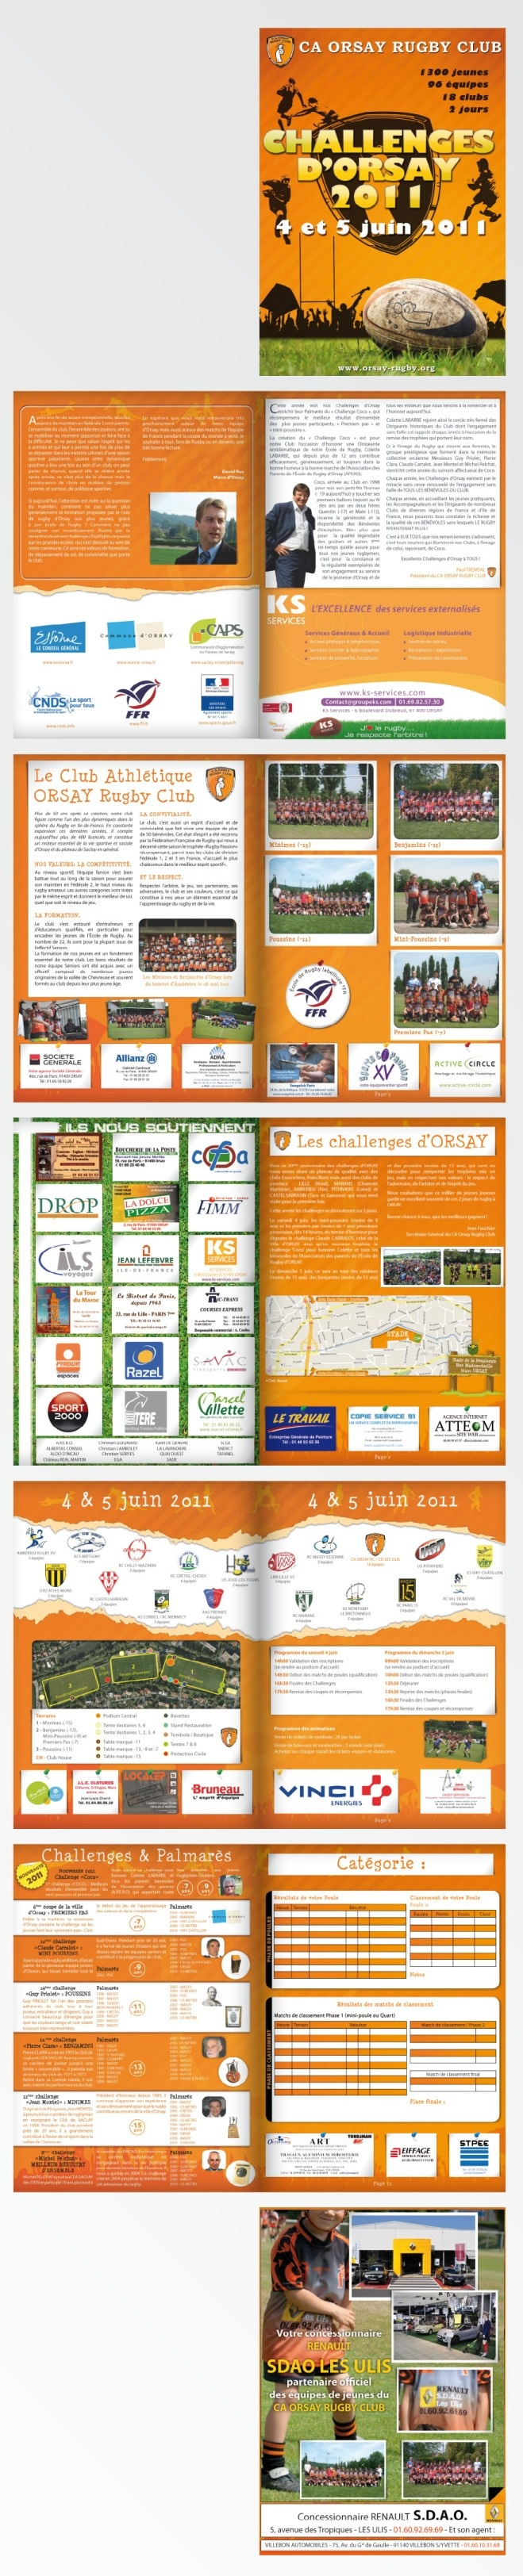 #Plaquette / #Brochure #Rugby 12 pages pour le CA ORSAY RUGBY CLUB - #Orsay (91, France) - Challenges 2011